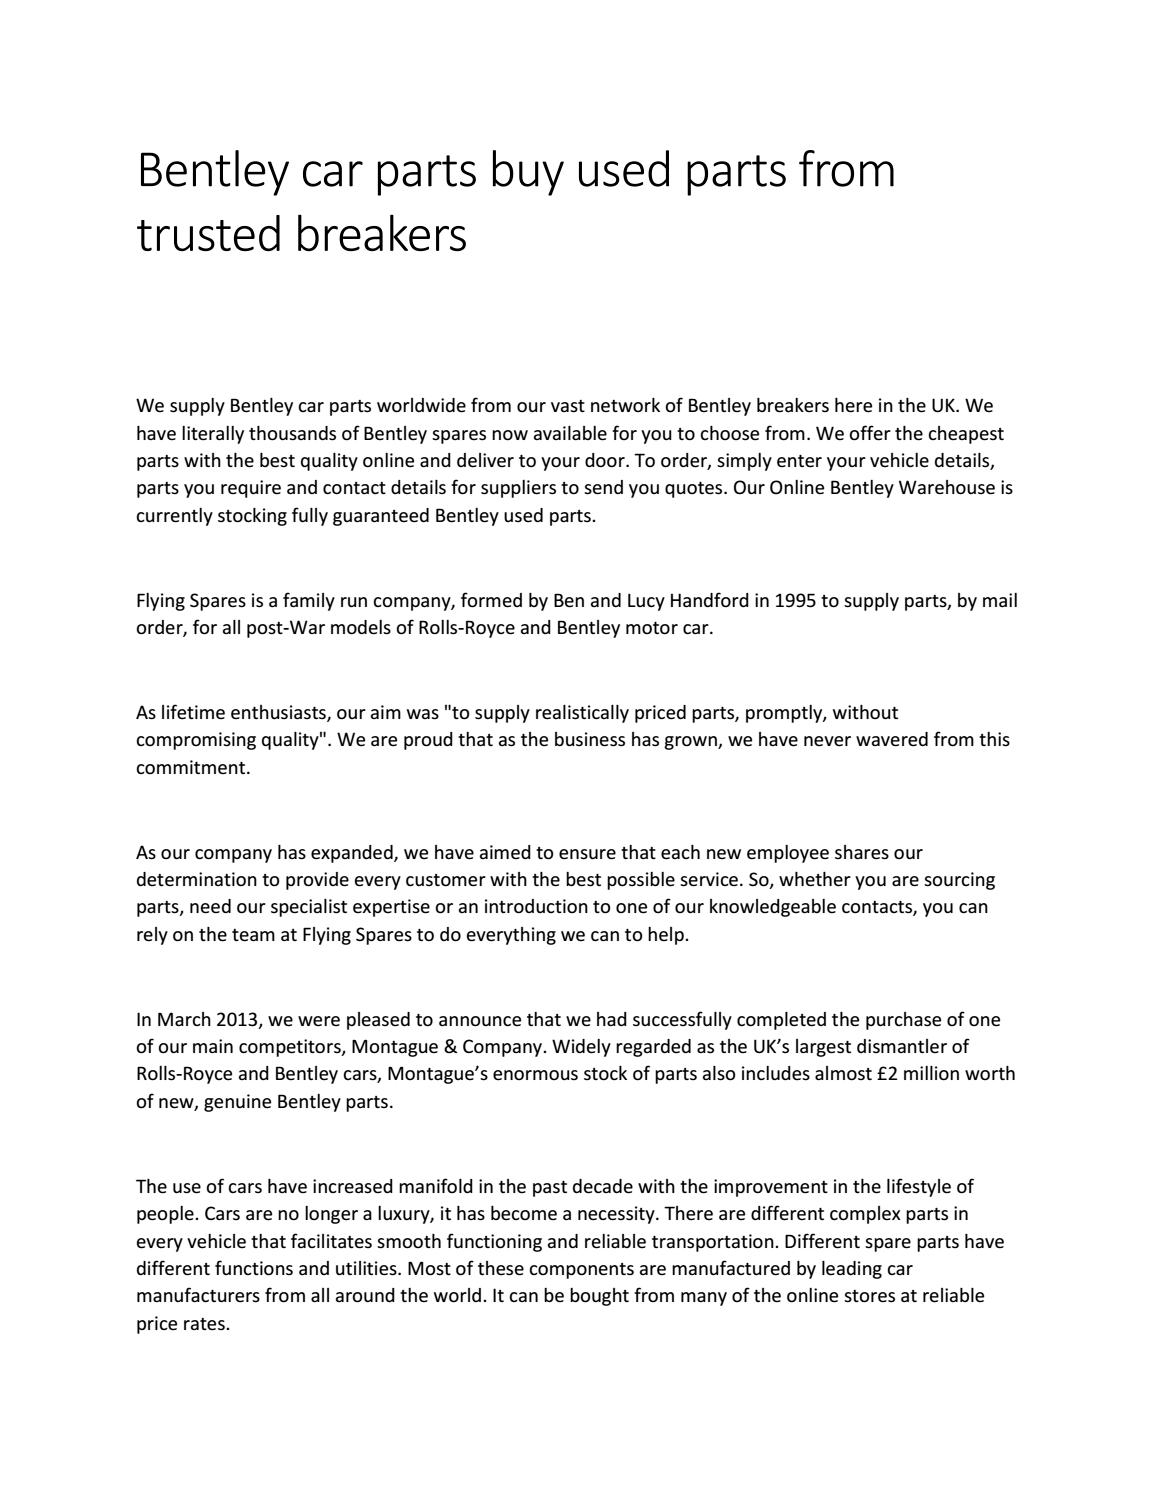 Bentley Car Parts Buy Used Parts From Trusted Breakers